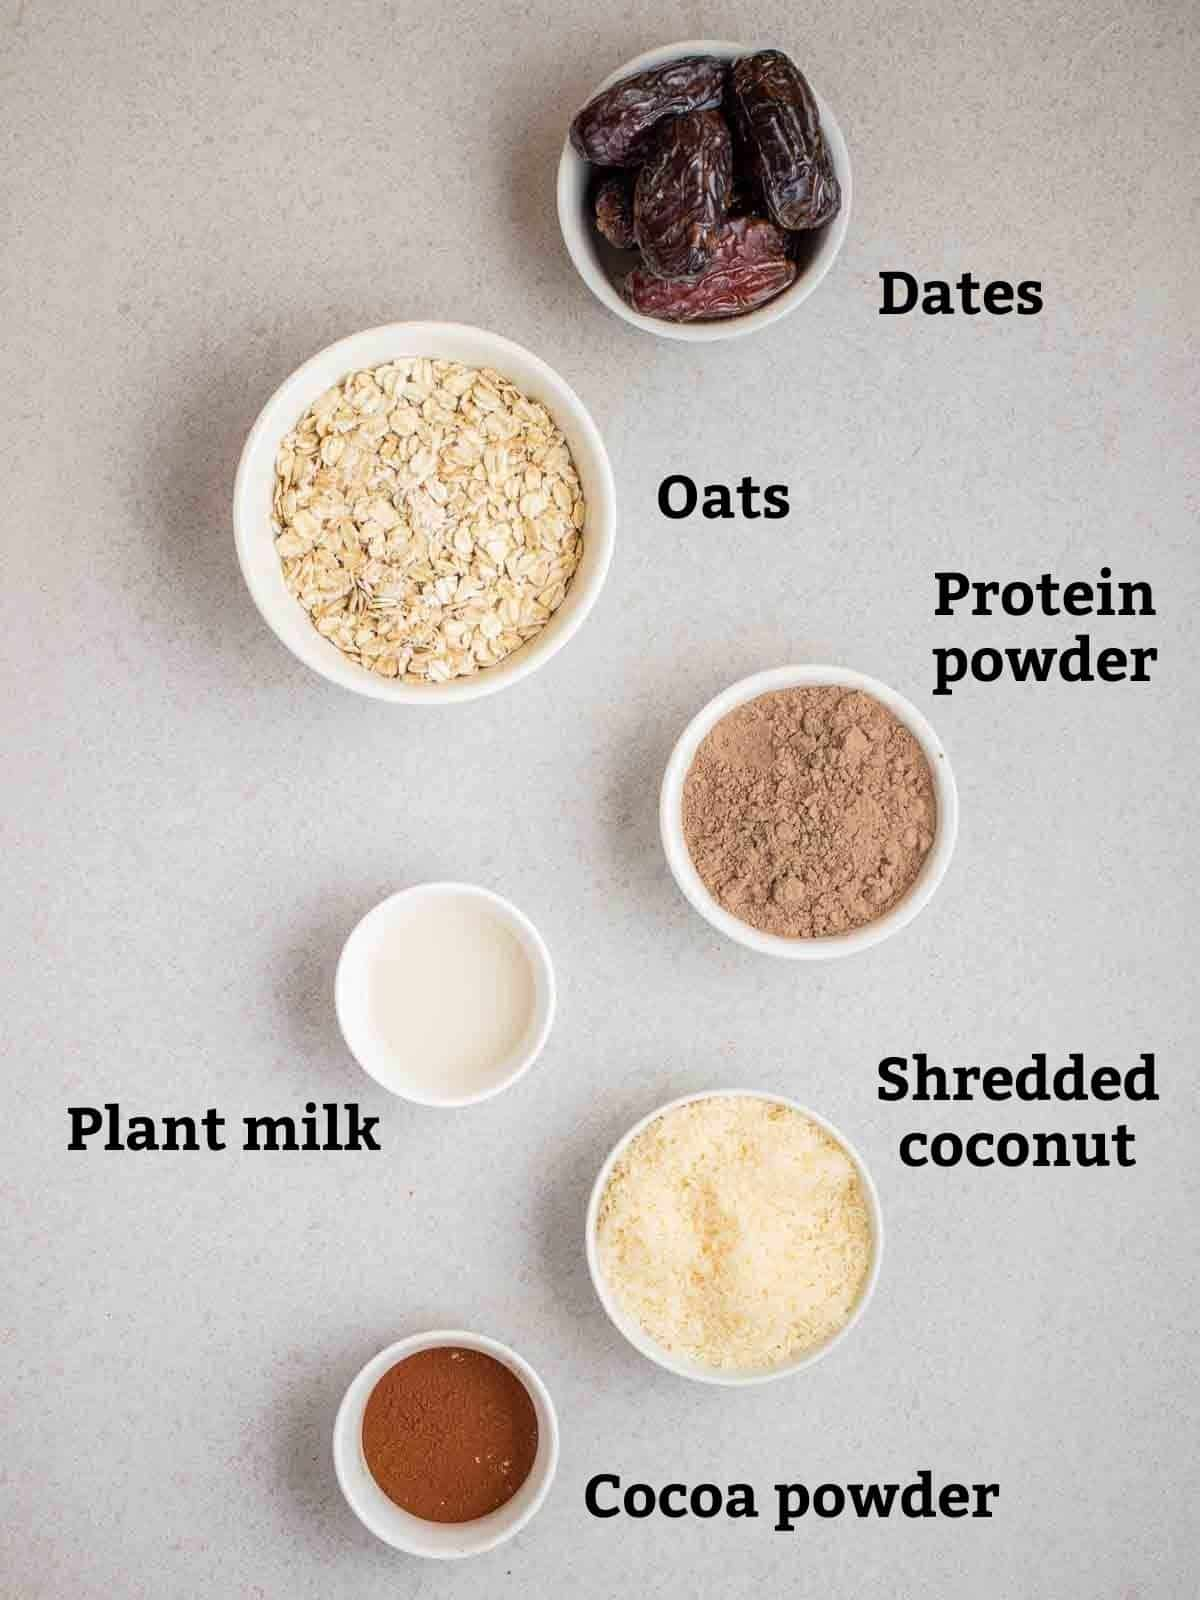 Ingredients needed like dates, oats, protein powder, milk, coconut and cocoa powder.